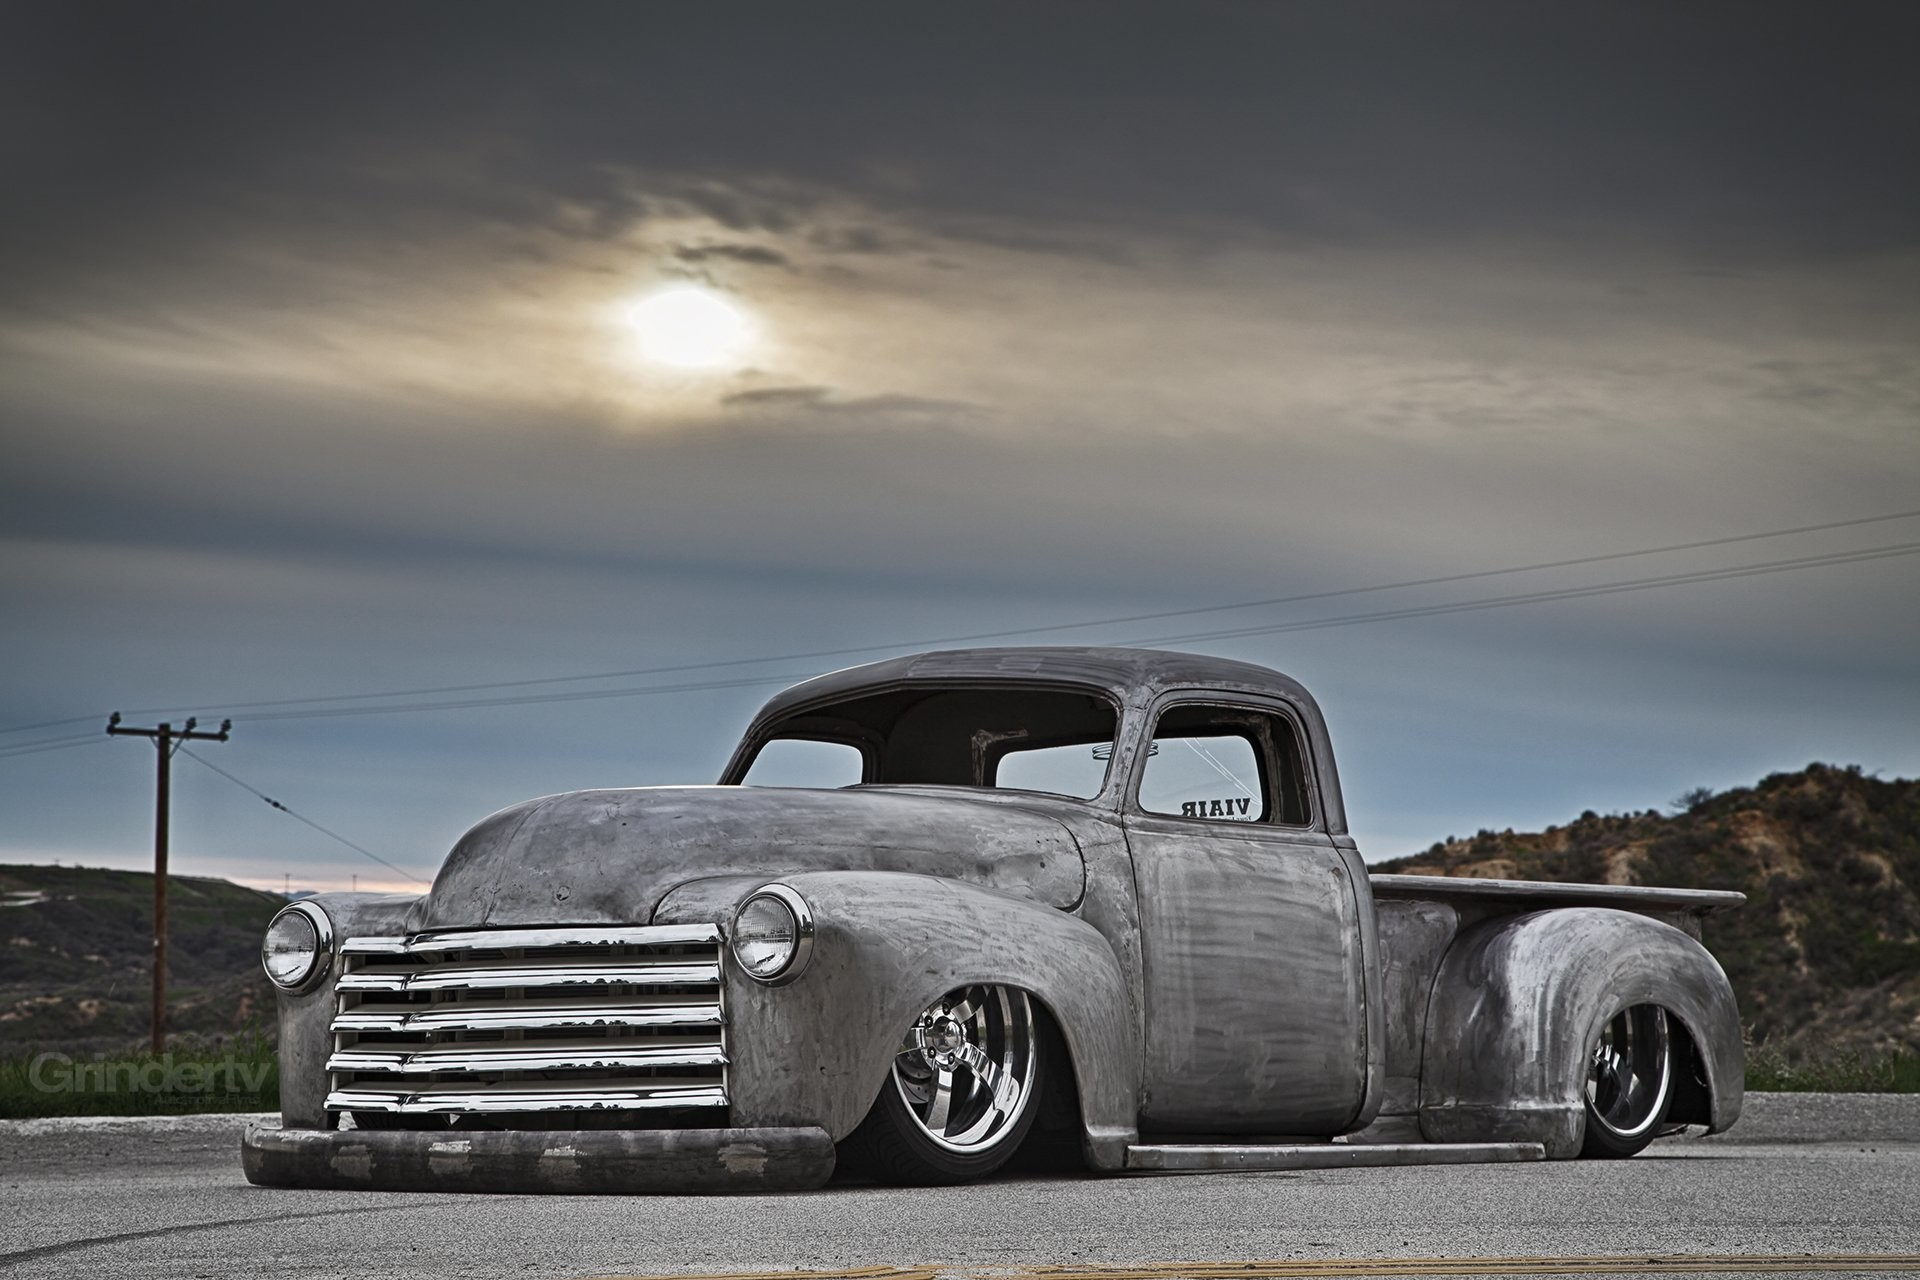 1920x1280 Chevrolet Truck Wallpaper Free For Iphone Chevy Hd Camaro Android .